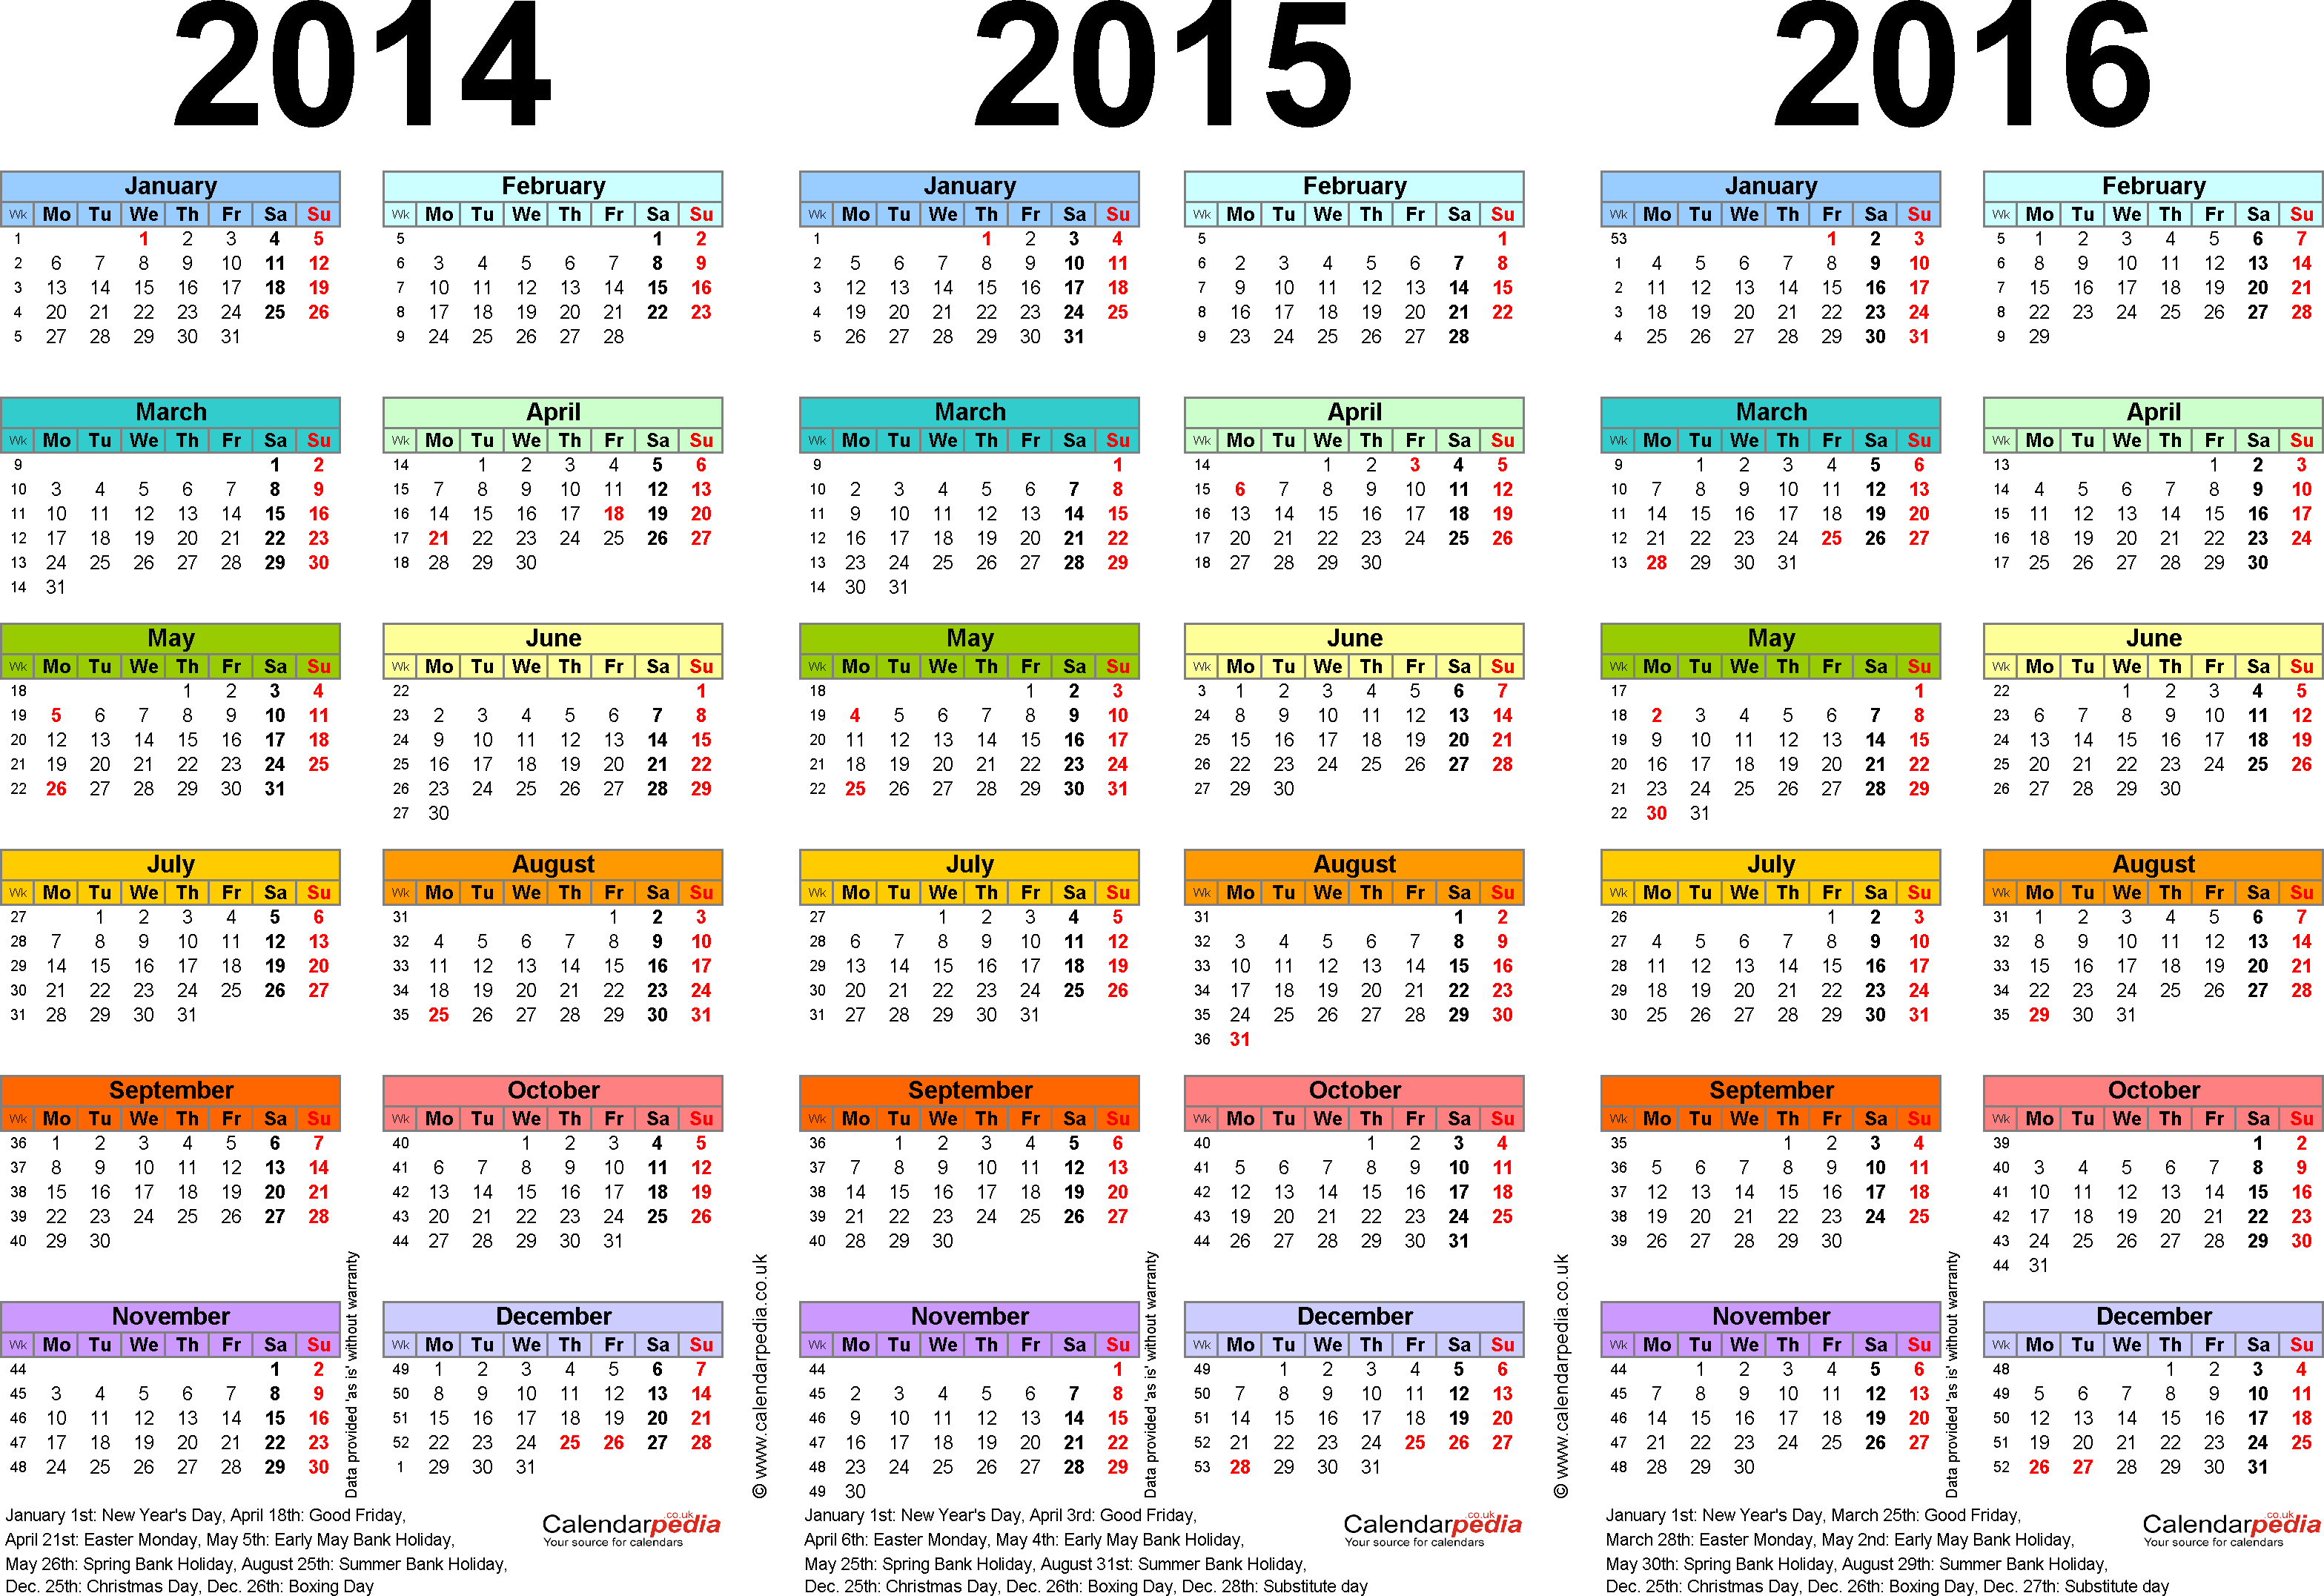 Download Template 1: PDF template for three year calendar 2014-2016 in colour (landscape orientation, 1 page, A4)